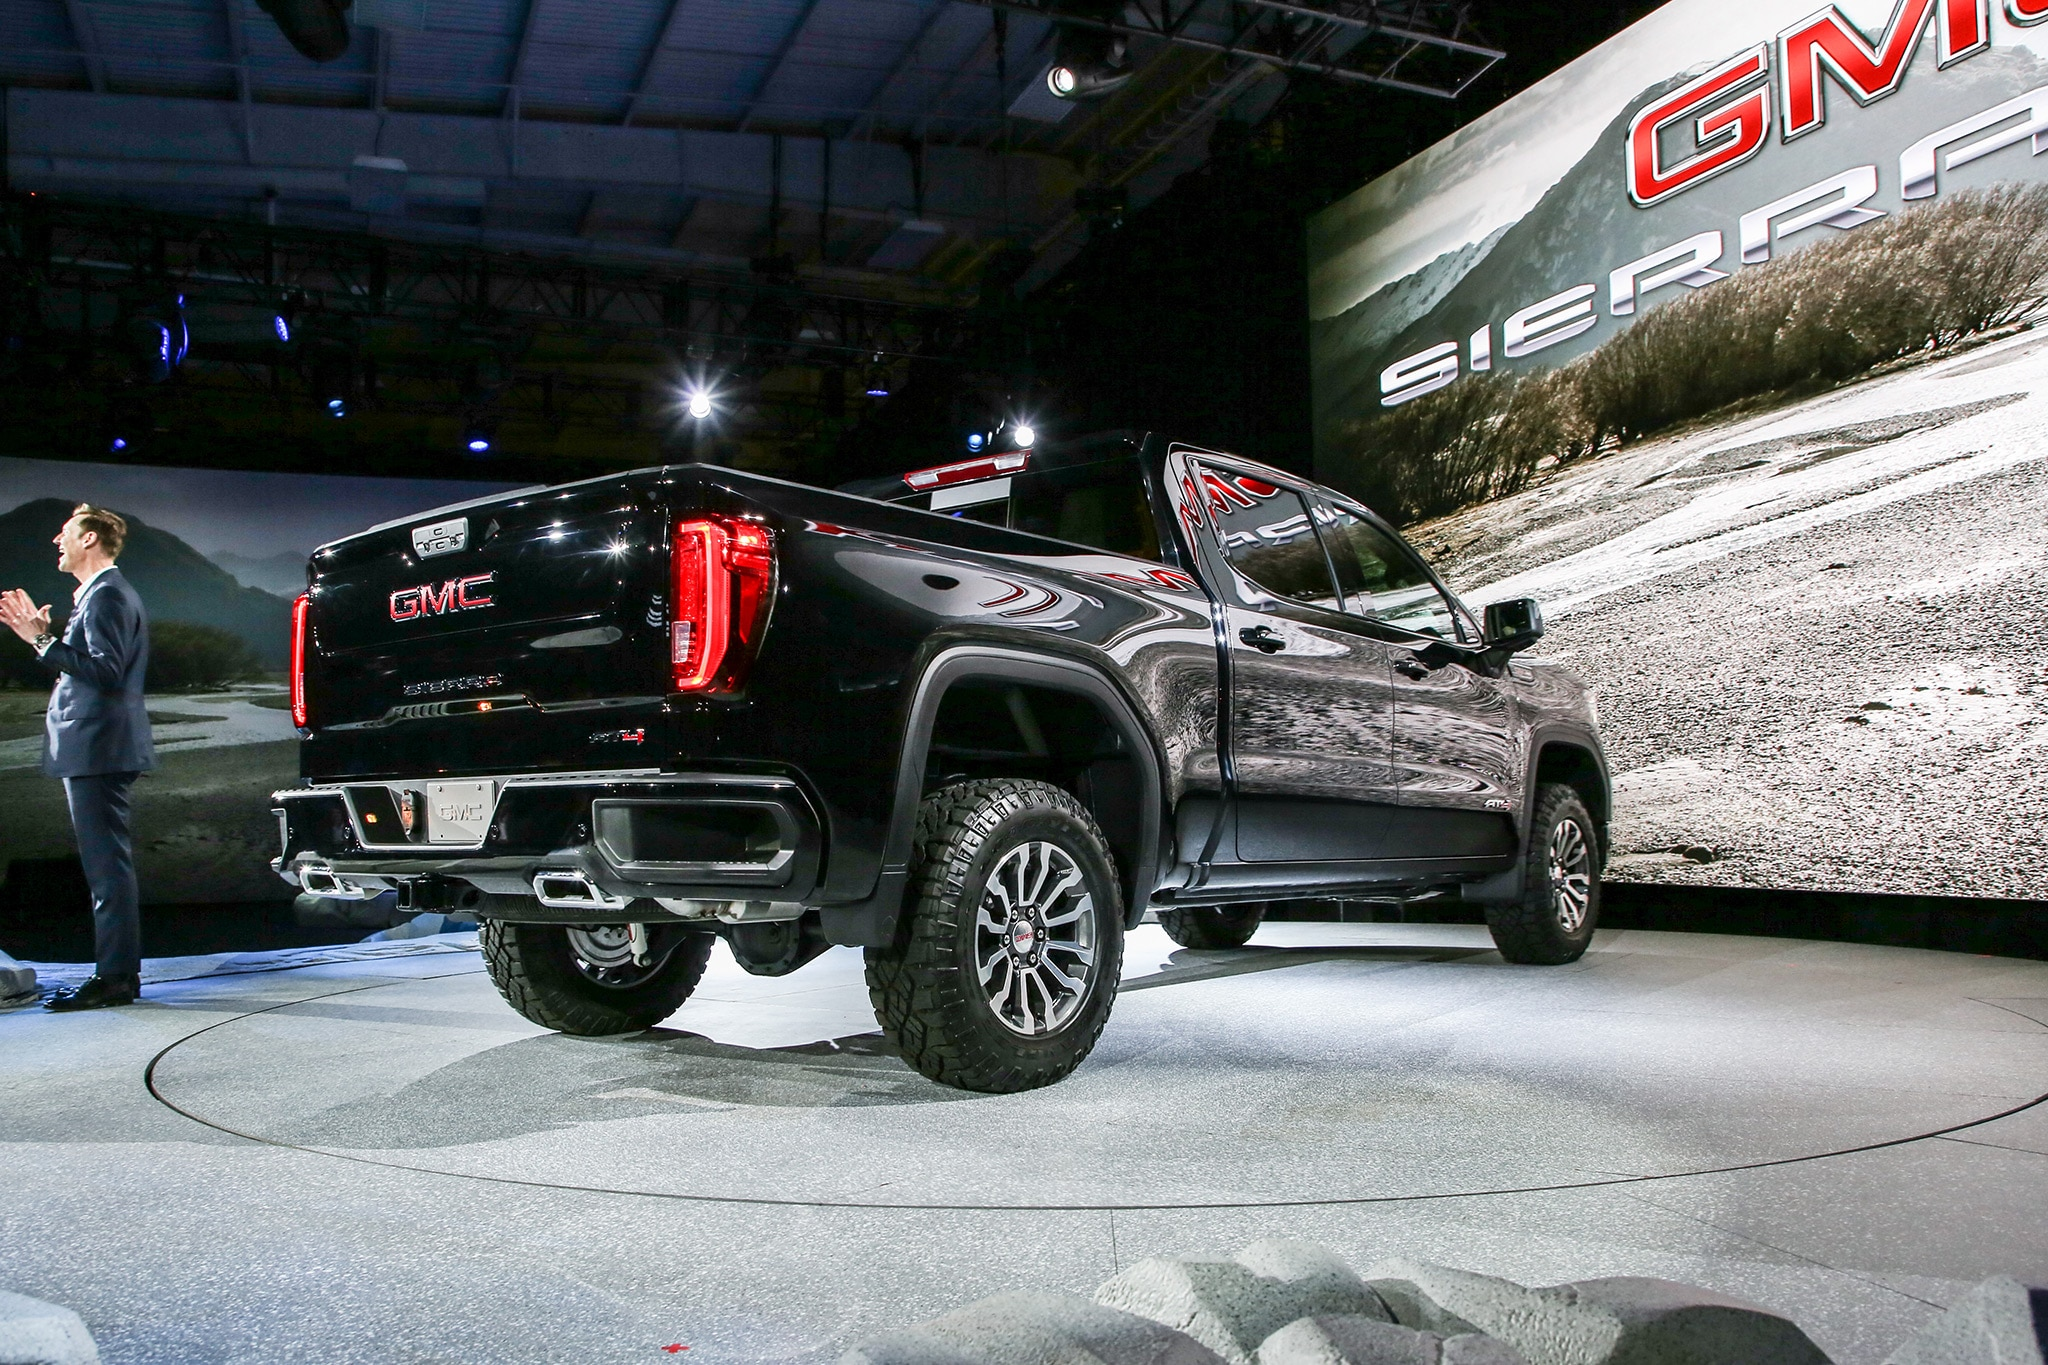 2019 GMC Sierra AT4 Gets More Off-Road Chops | Automobile ...